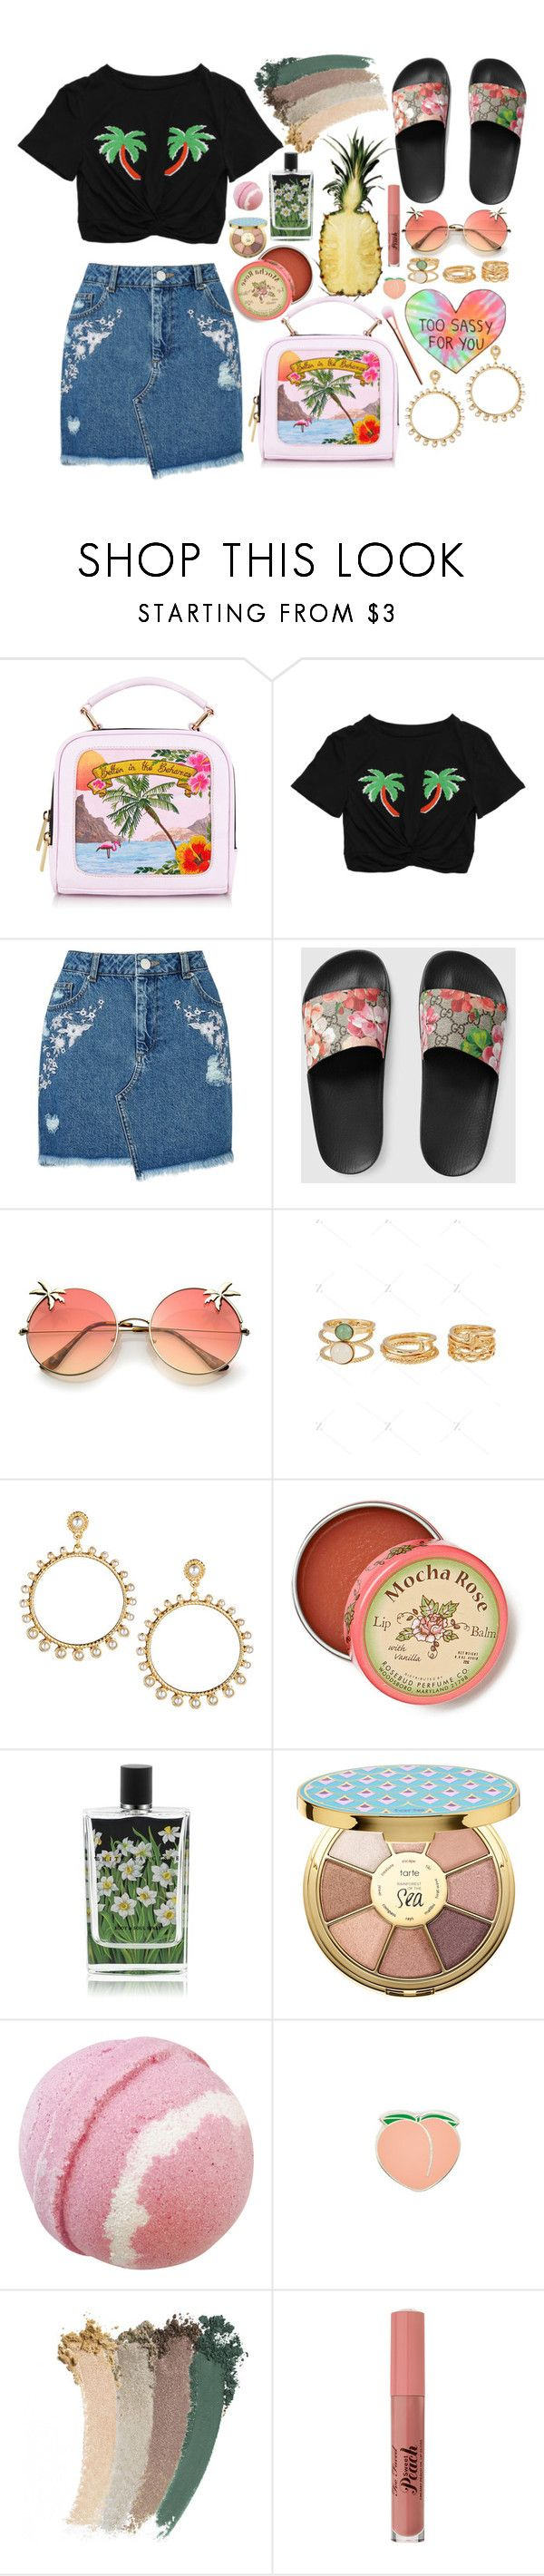 """""""Summer is a state of mind"""" by gabi-sweet ❤ liked on Polyvore featuring Miss Selfridge, Gucci, R.J. Graziano, Anthropologie, Nest Fragrances, tarte and PINTRILL"""